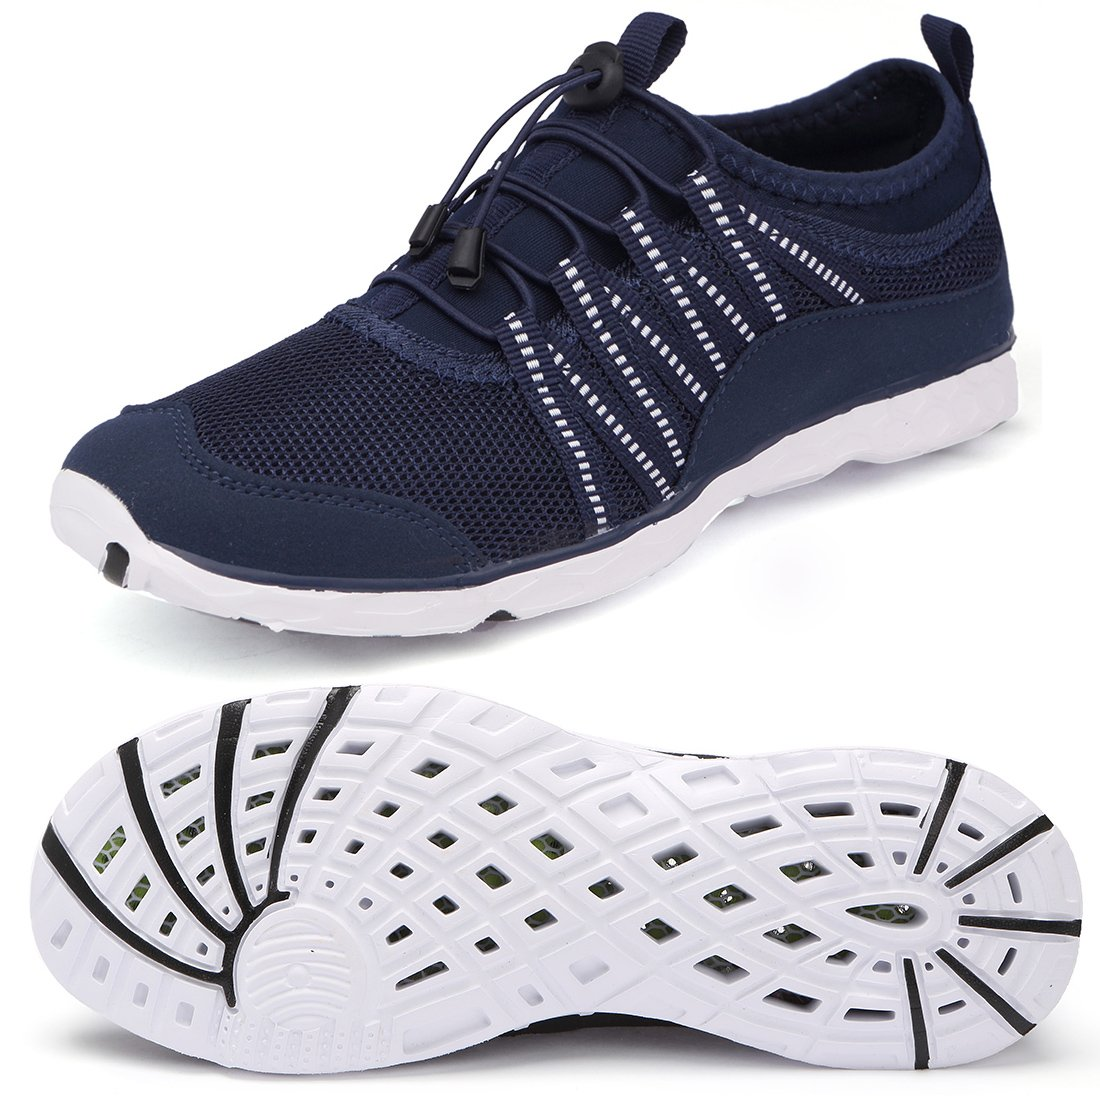 Navy White-073 12 US Alibress Men's Casual Sneakers Lightweight Breathable Walking Running shoes